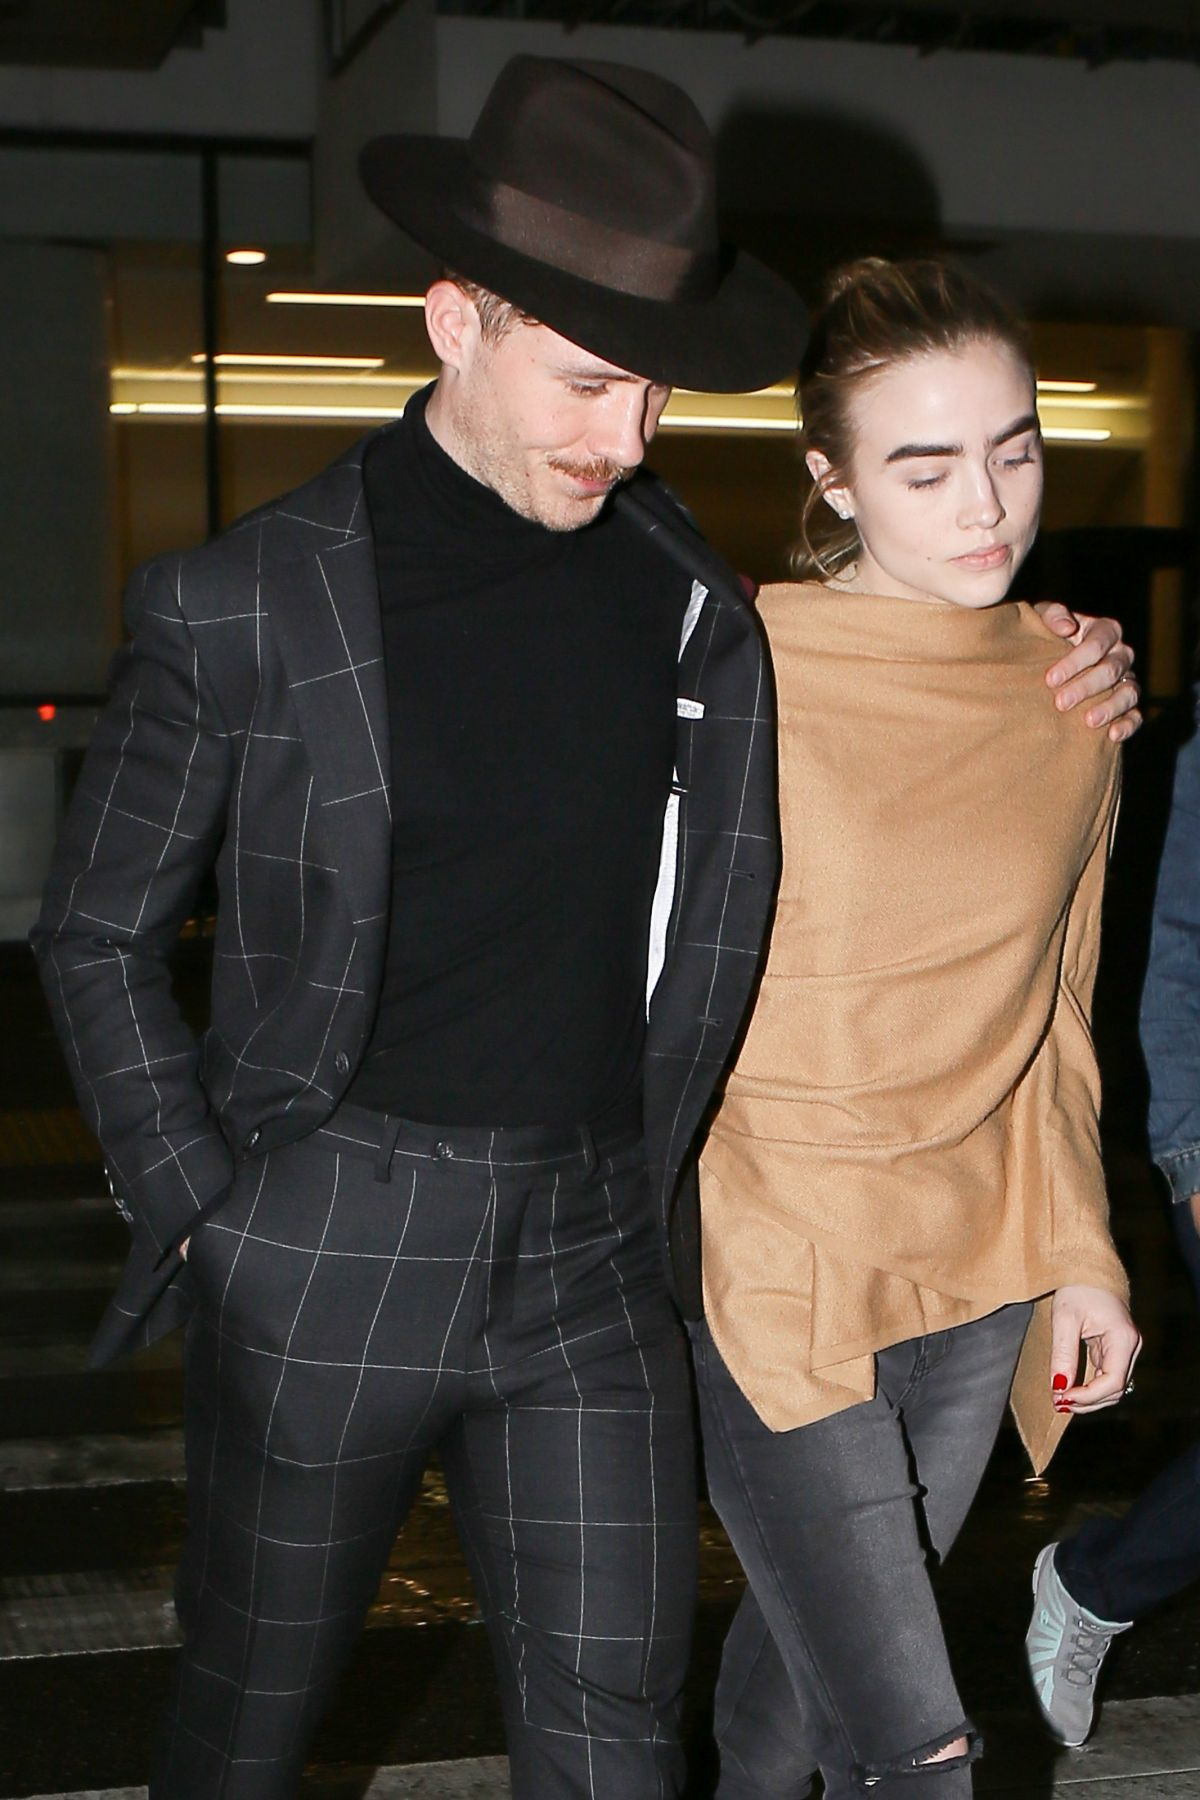 MADDIE HASSON at Los Angeles International Airport 01/22/2017